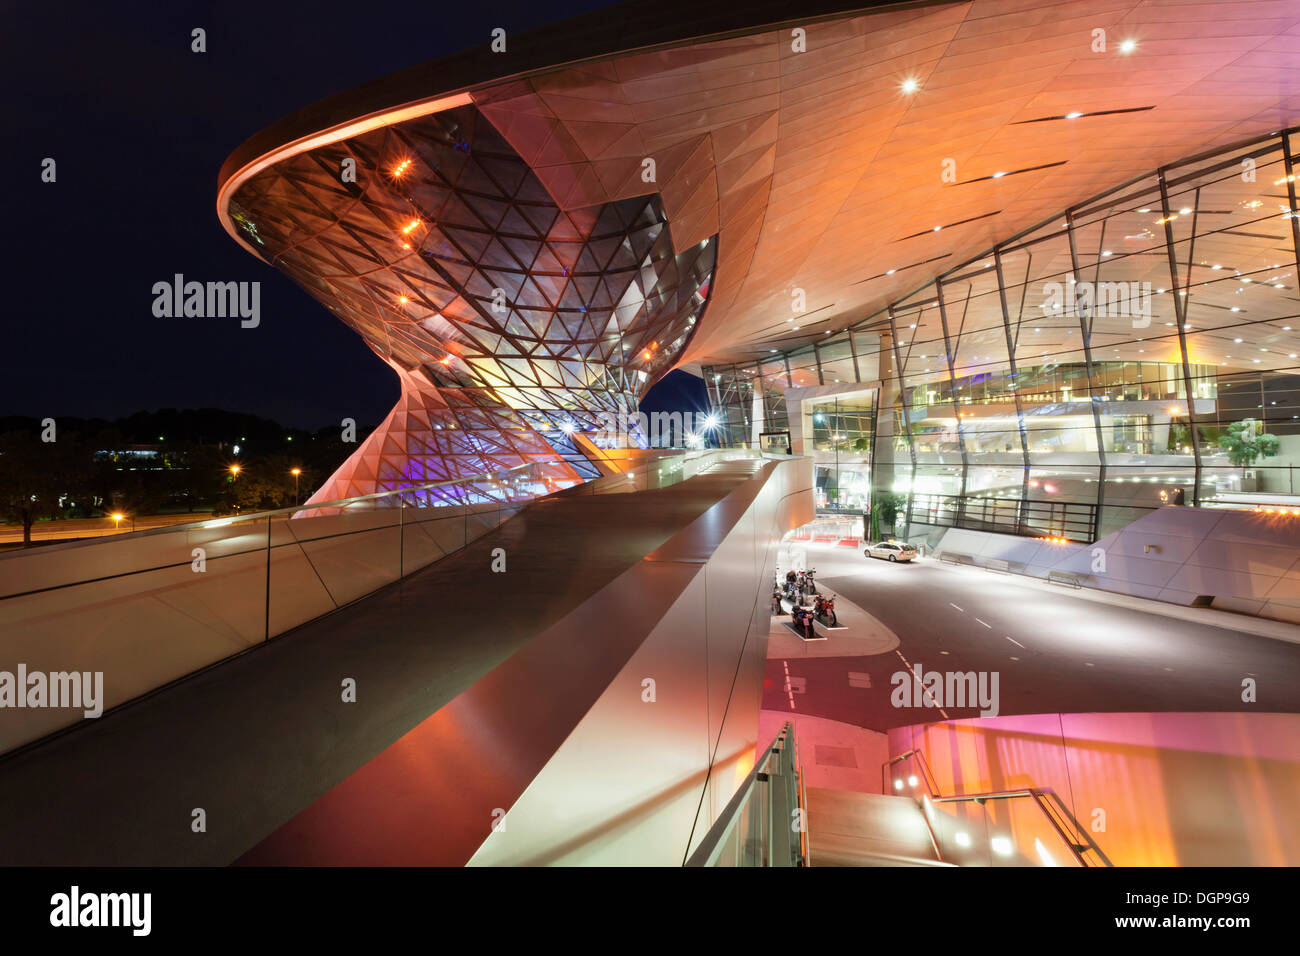 BMW Welt, a multi-functional customer experience and exhibition facility of the BMW AG, on Mittlerer Ring motorway - Stock Image